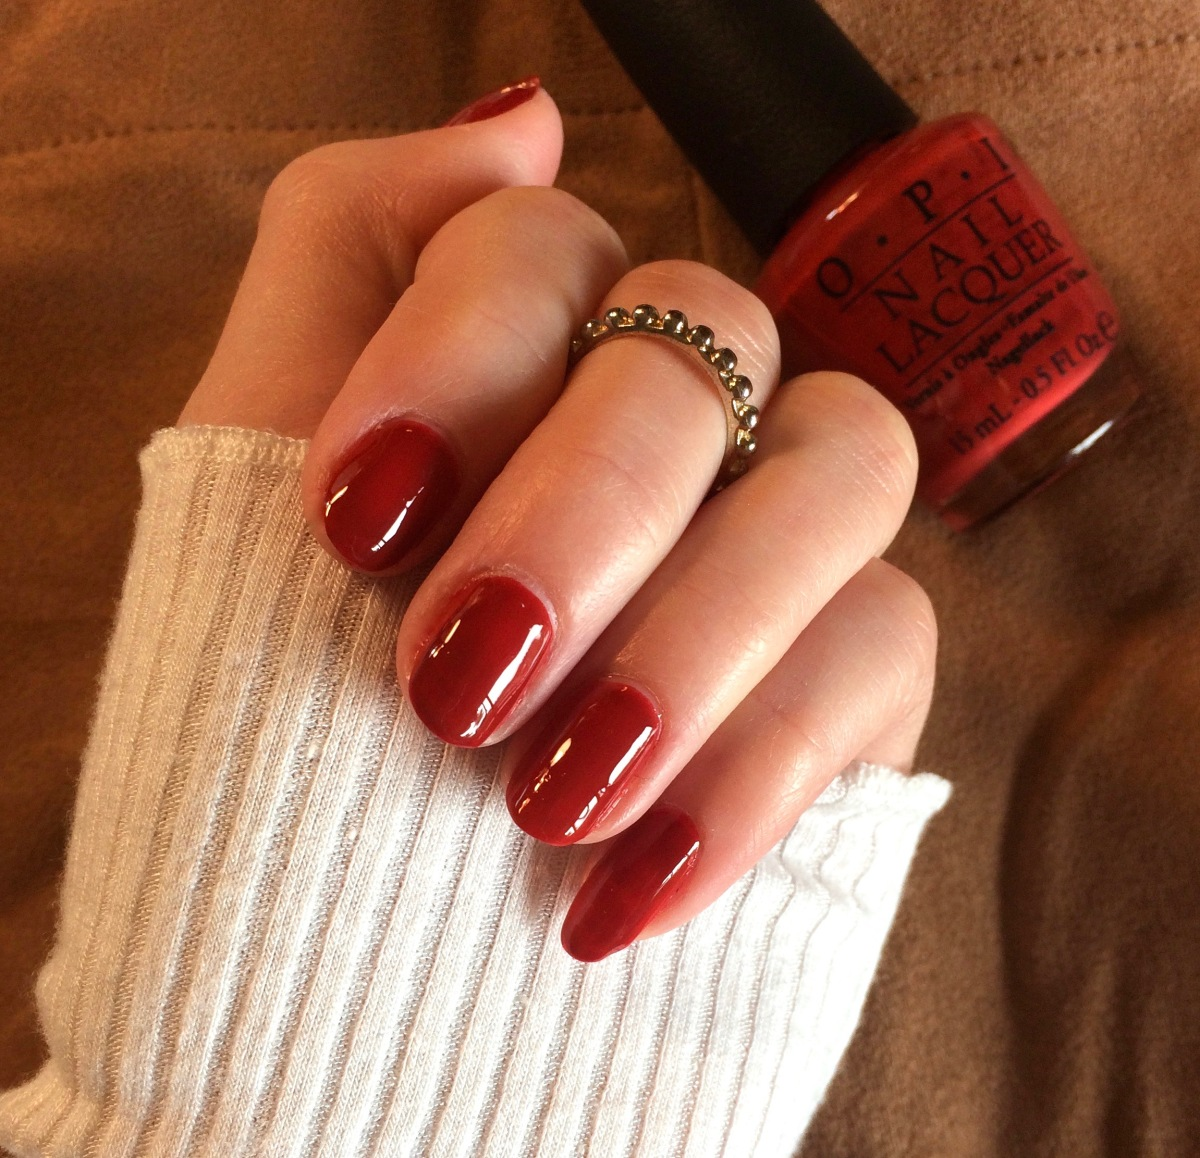 Fall Manicure: OPI\'s First Date At The Golden Gate – TAYLOR DOROTHY